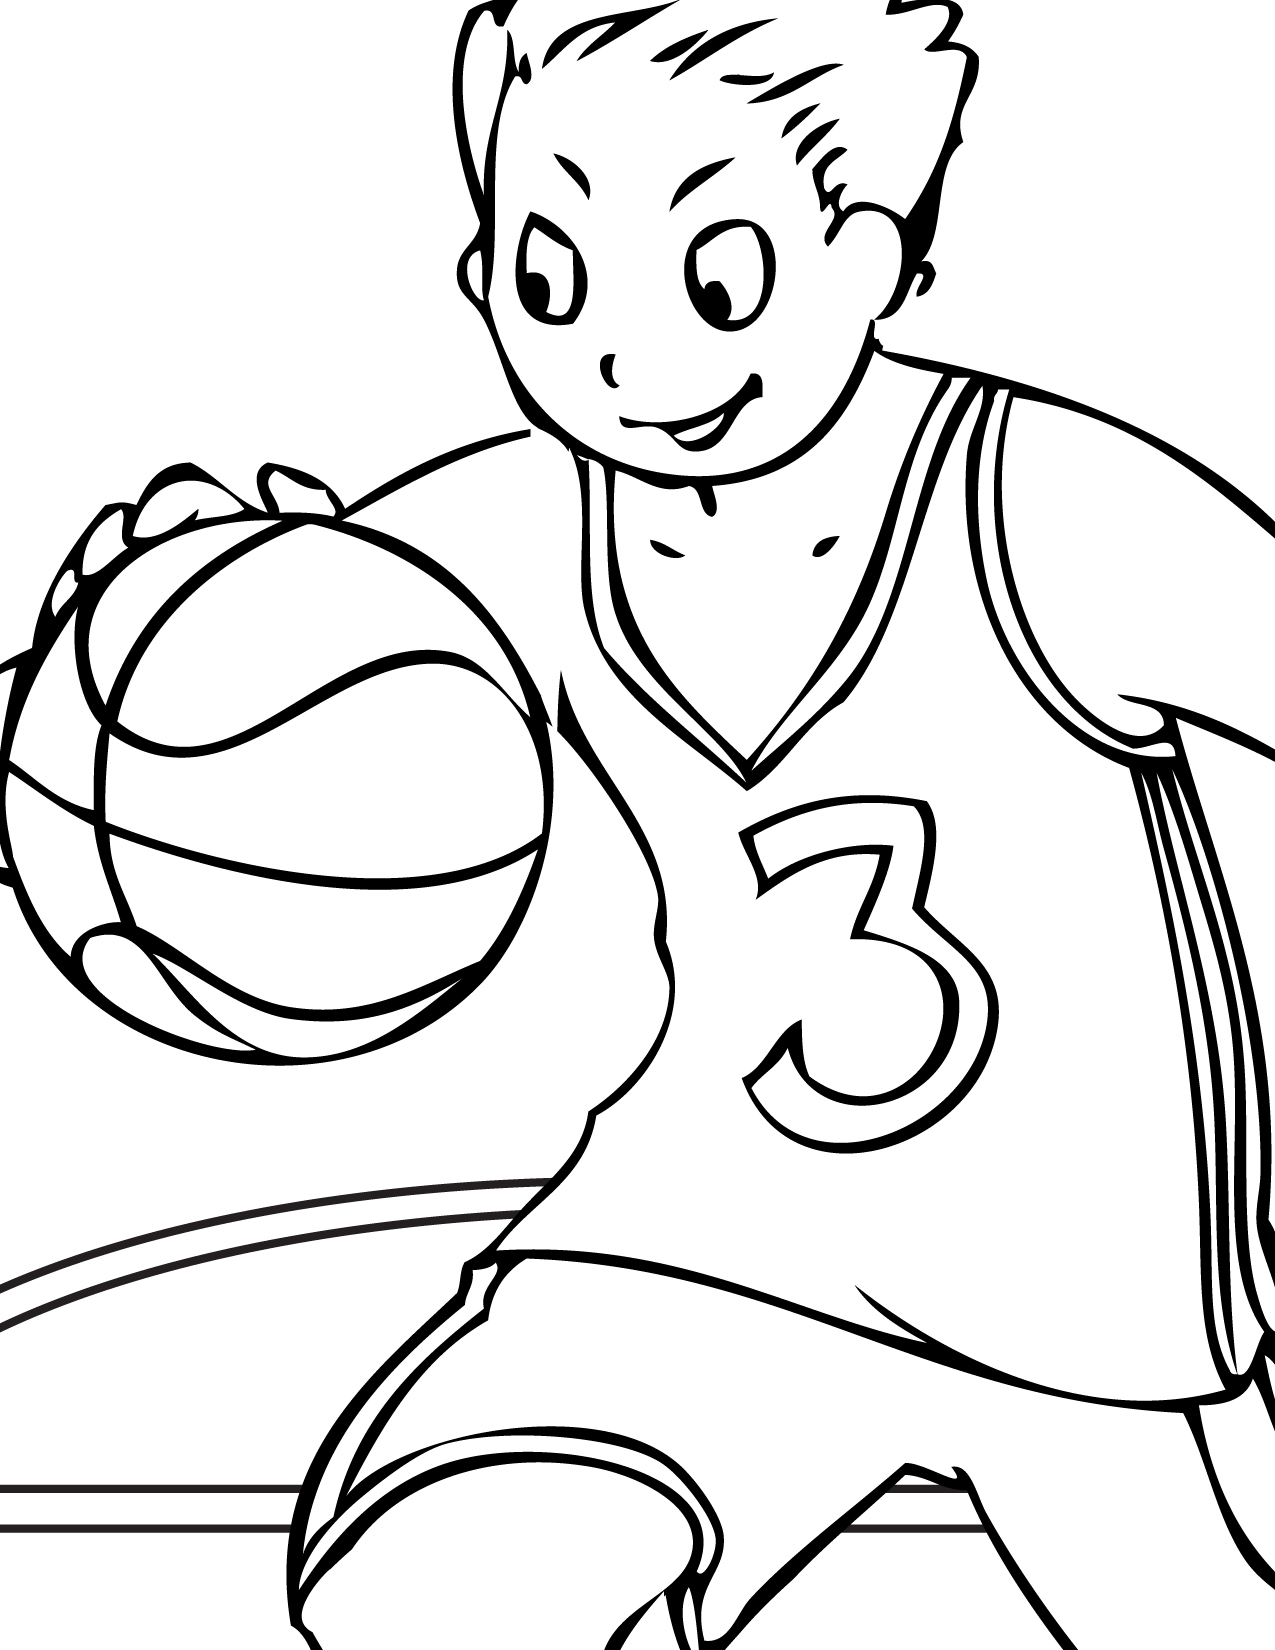 coloring sheets free online online coloring games coloring pages to print sheets free online coloring